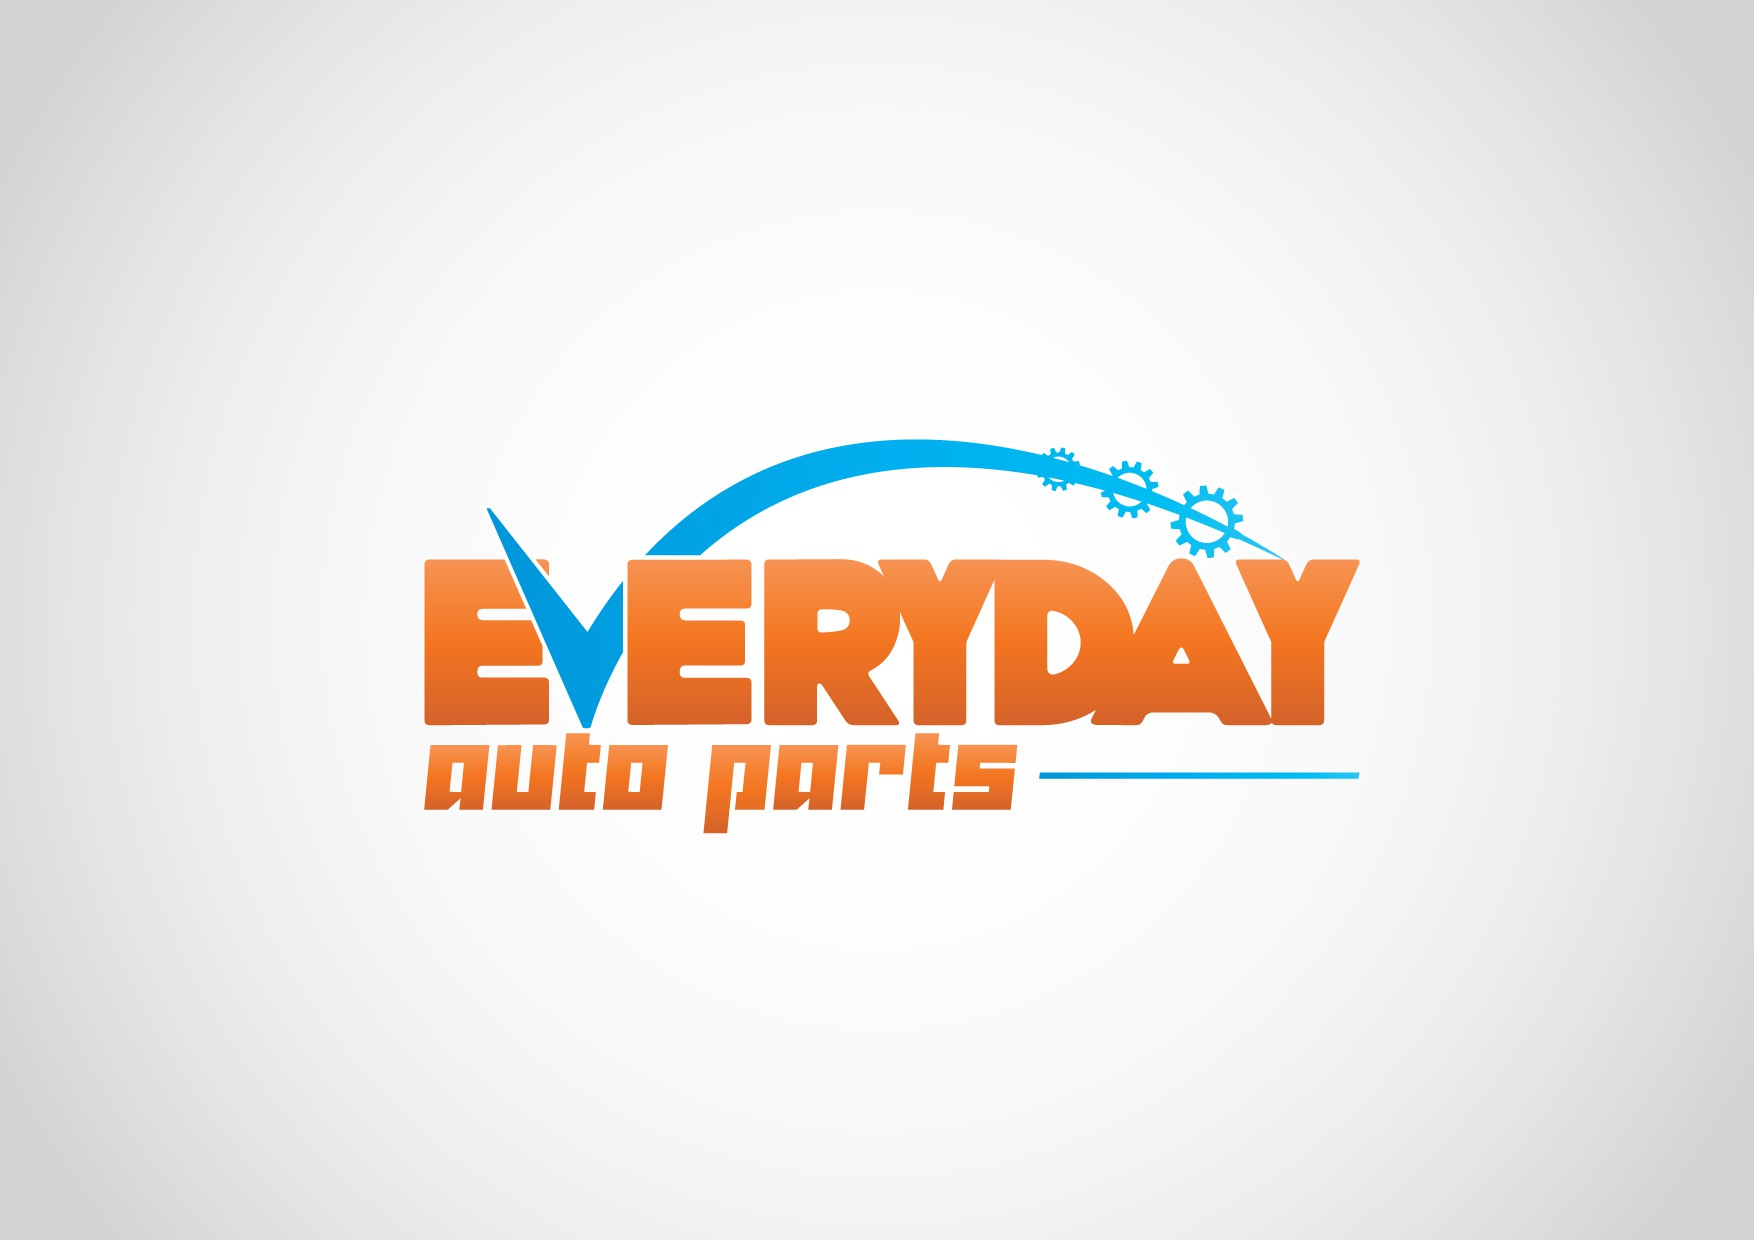 Create the next logo for Everyday Auto Parts